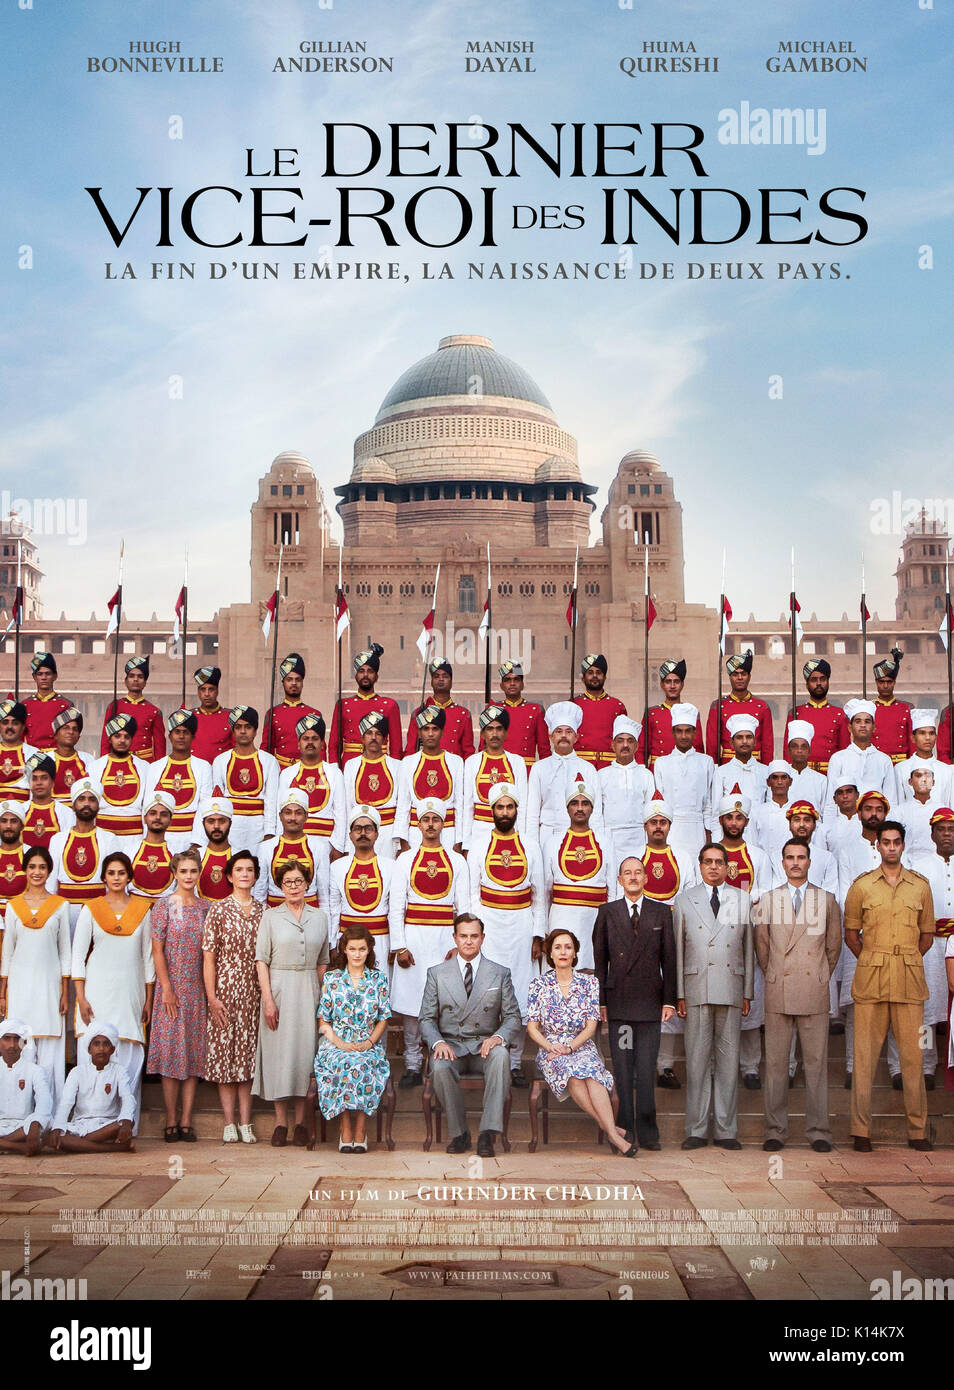 RELEASE DATE: September 1, 2017 TITLE: Viceroy's House STUDIO: BBC Films DIRECTOR: Gurinder Chadha PLOT: The final Viceroy of India, Lord Mountbatten, is tasked with overseeing the transition of British India to independence, but meets with conflict as different sides clash in the face of monumental change. STARRING: Poster Art. (Credit Image: © BBC Films/Entertainment Pictures) - Stock Image